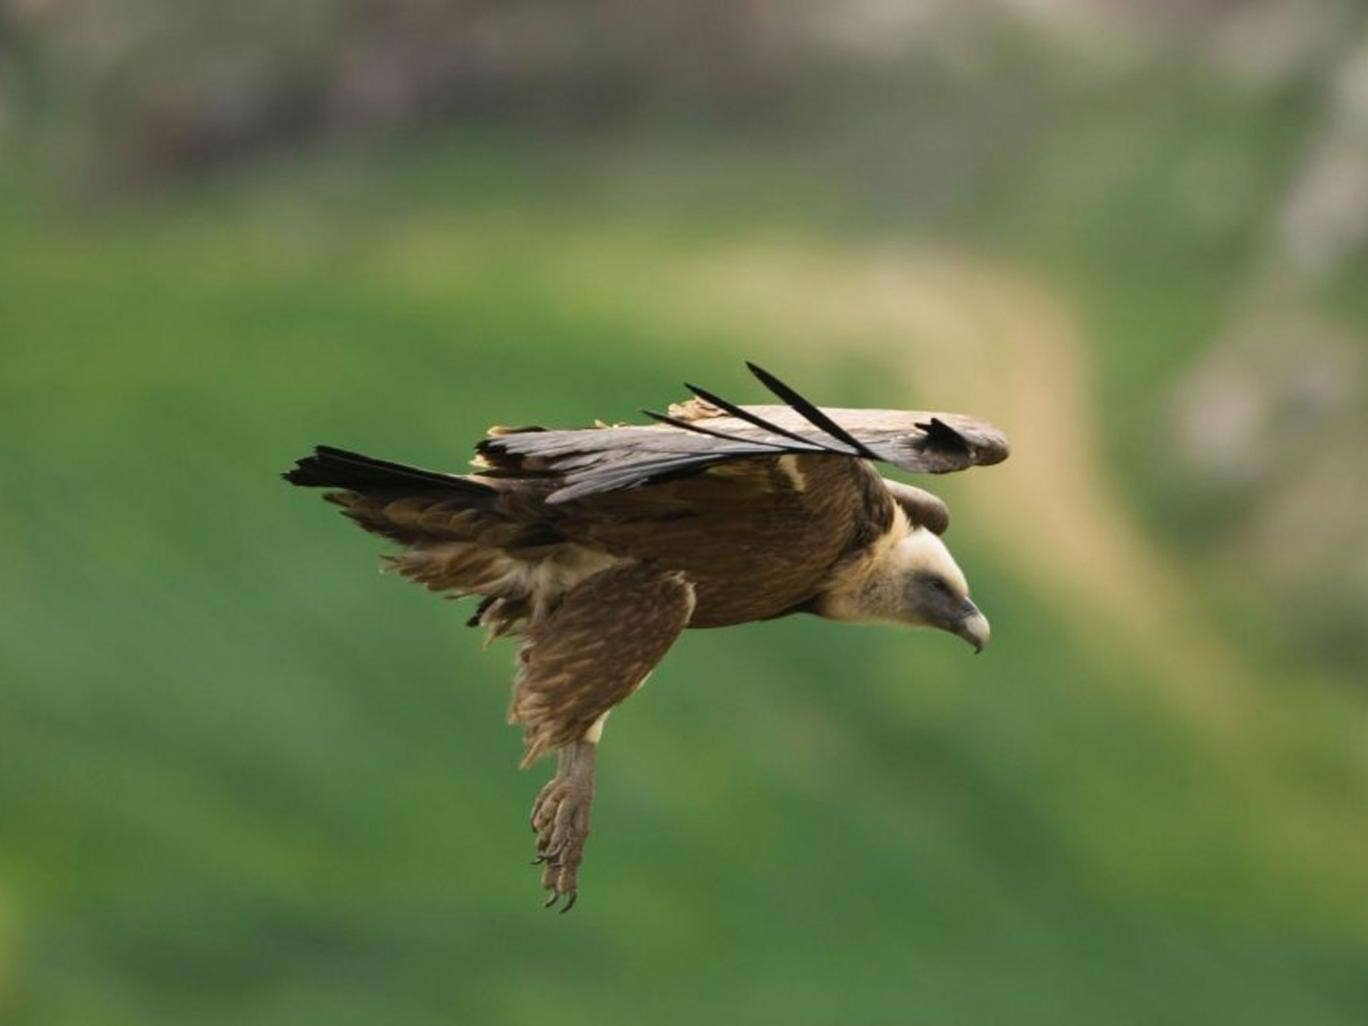 The Griffon vulture was fitted with a GPS transmitter